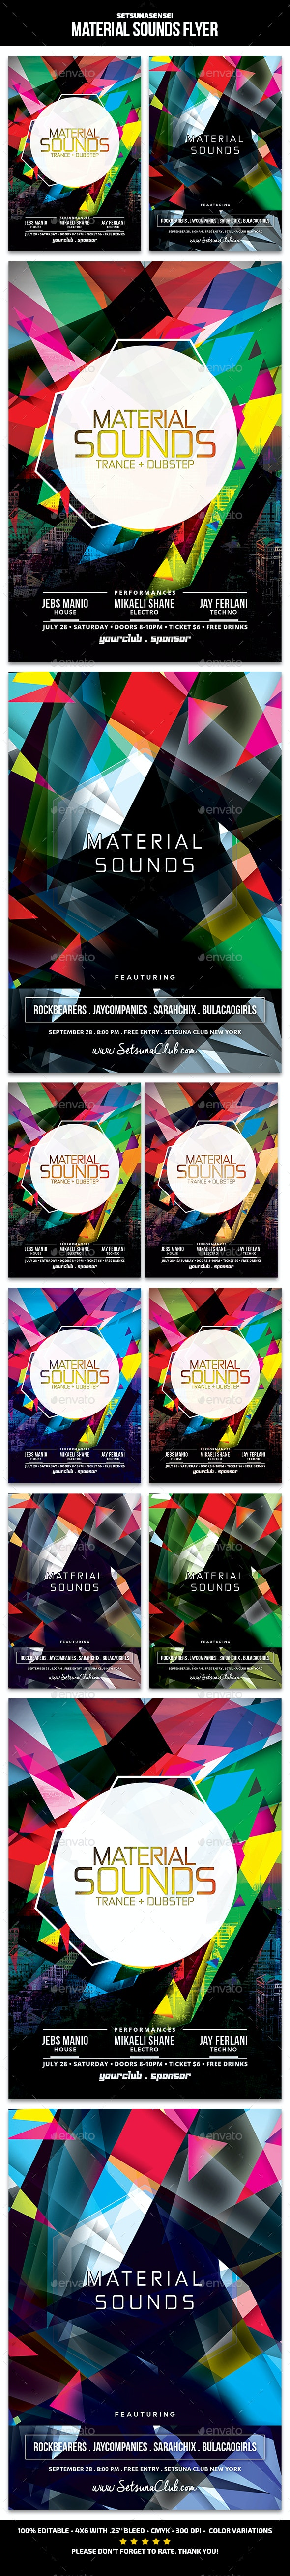 Material Sounds Flyer - Clubs & Parties Events